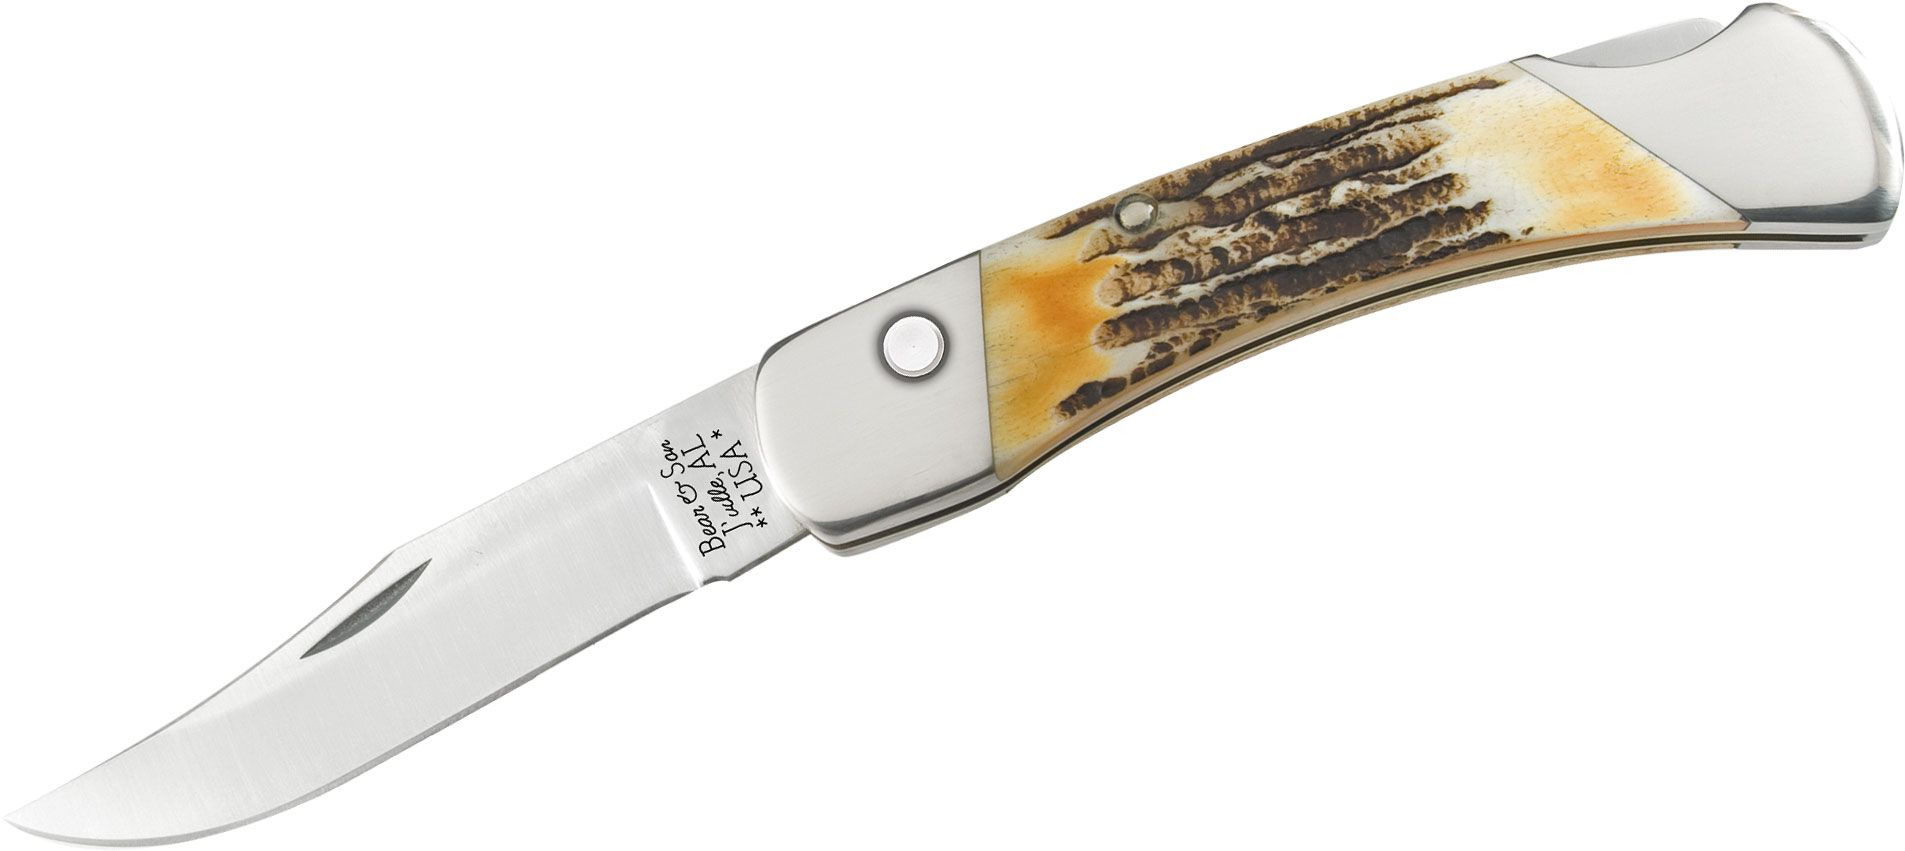 Bear & Son 5A97 AUTO Lockback Folding Knife 5 inch Closed, Genuine India Stag Bone Handles